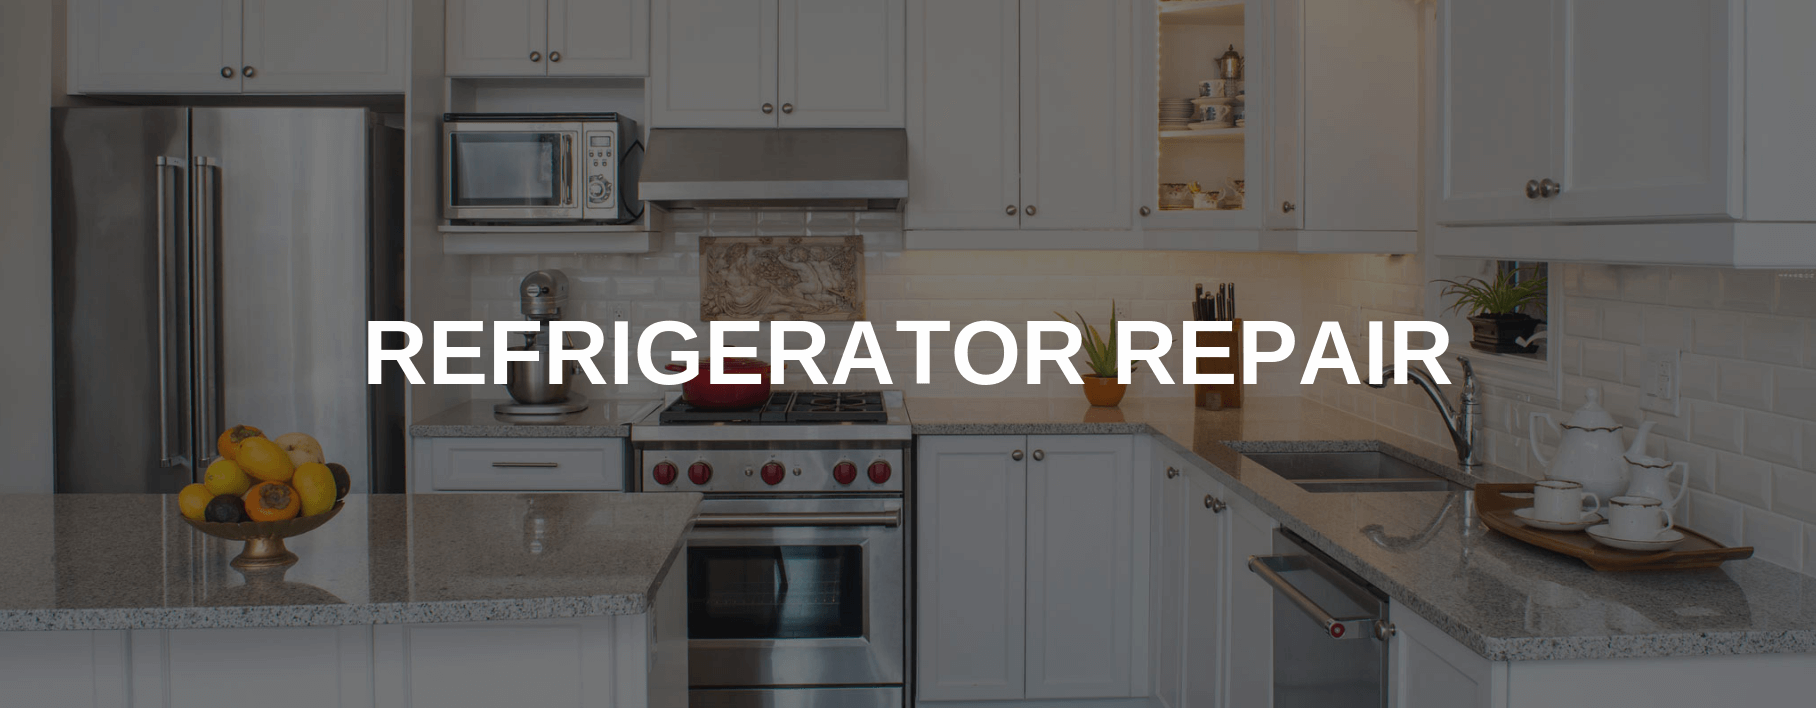 new rochelle refrigerator repair